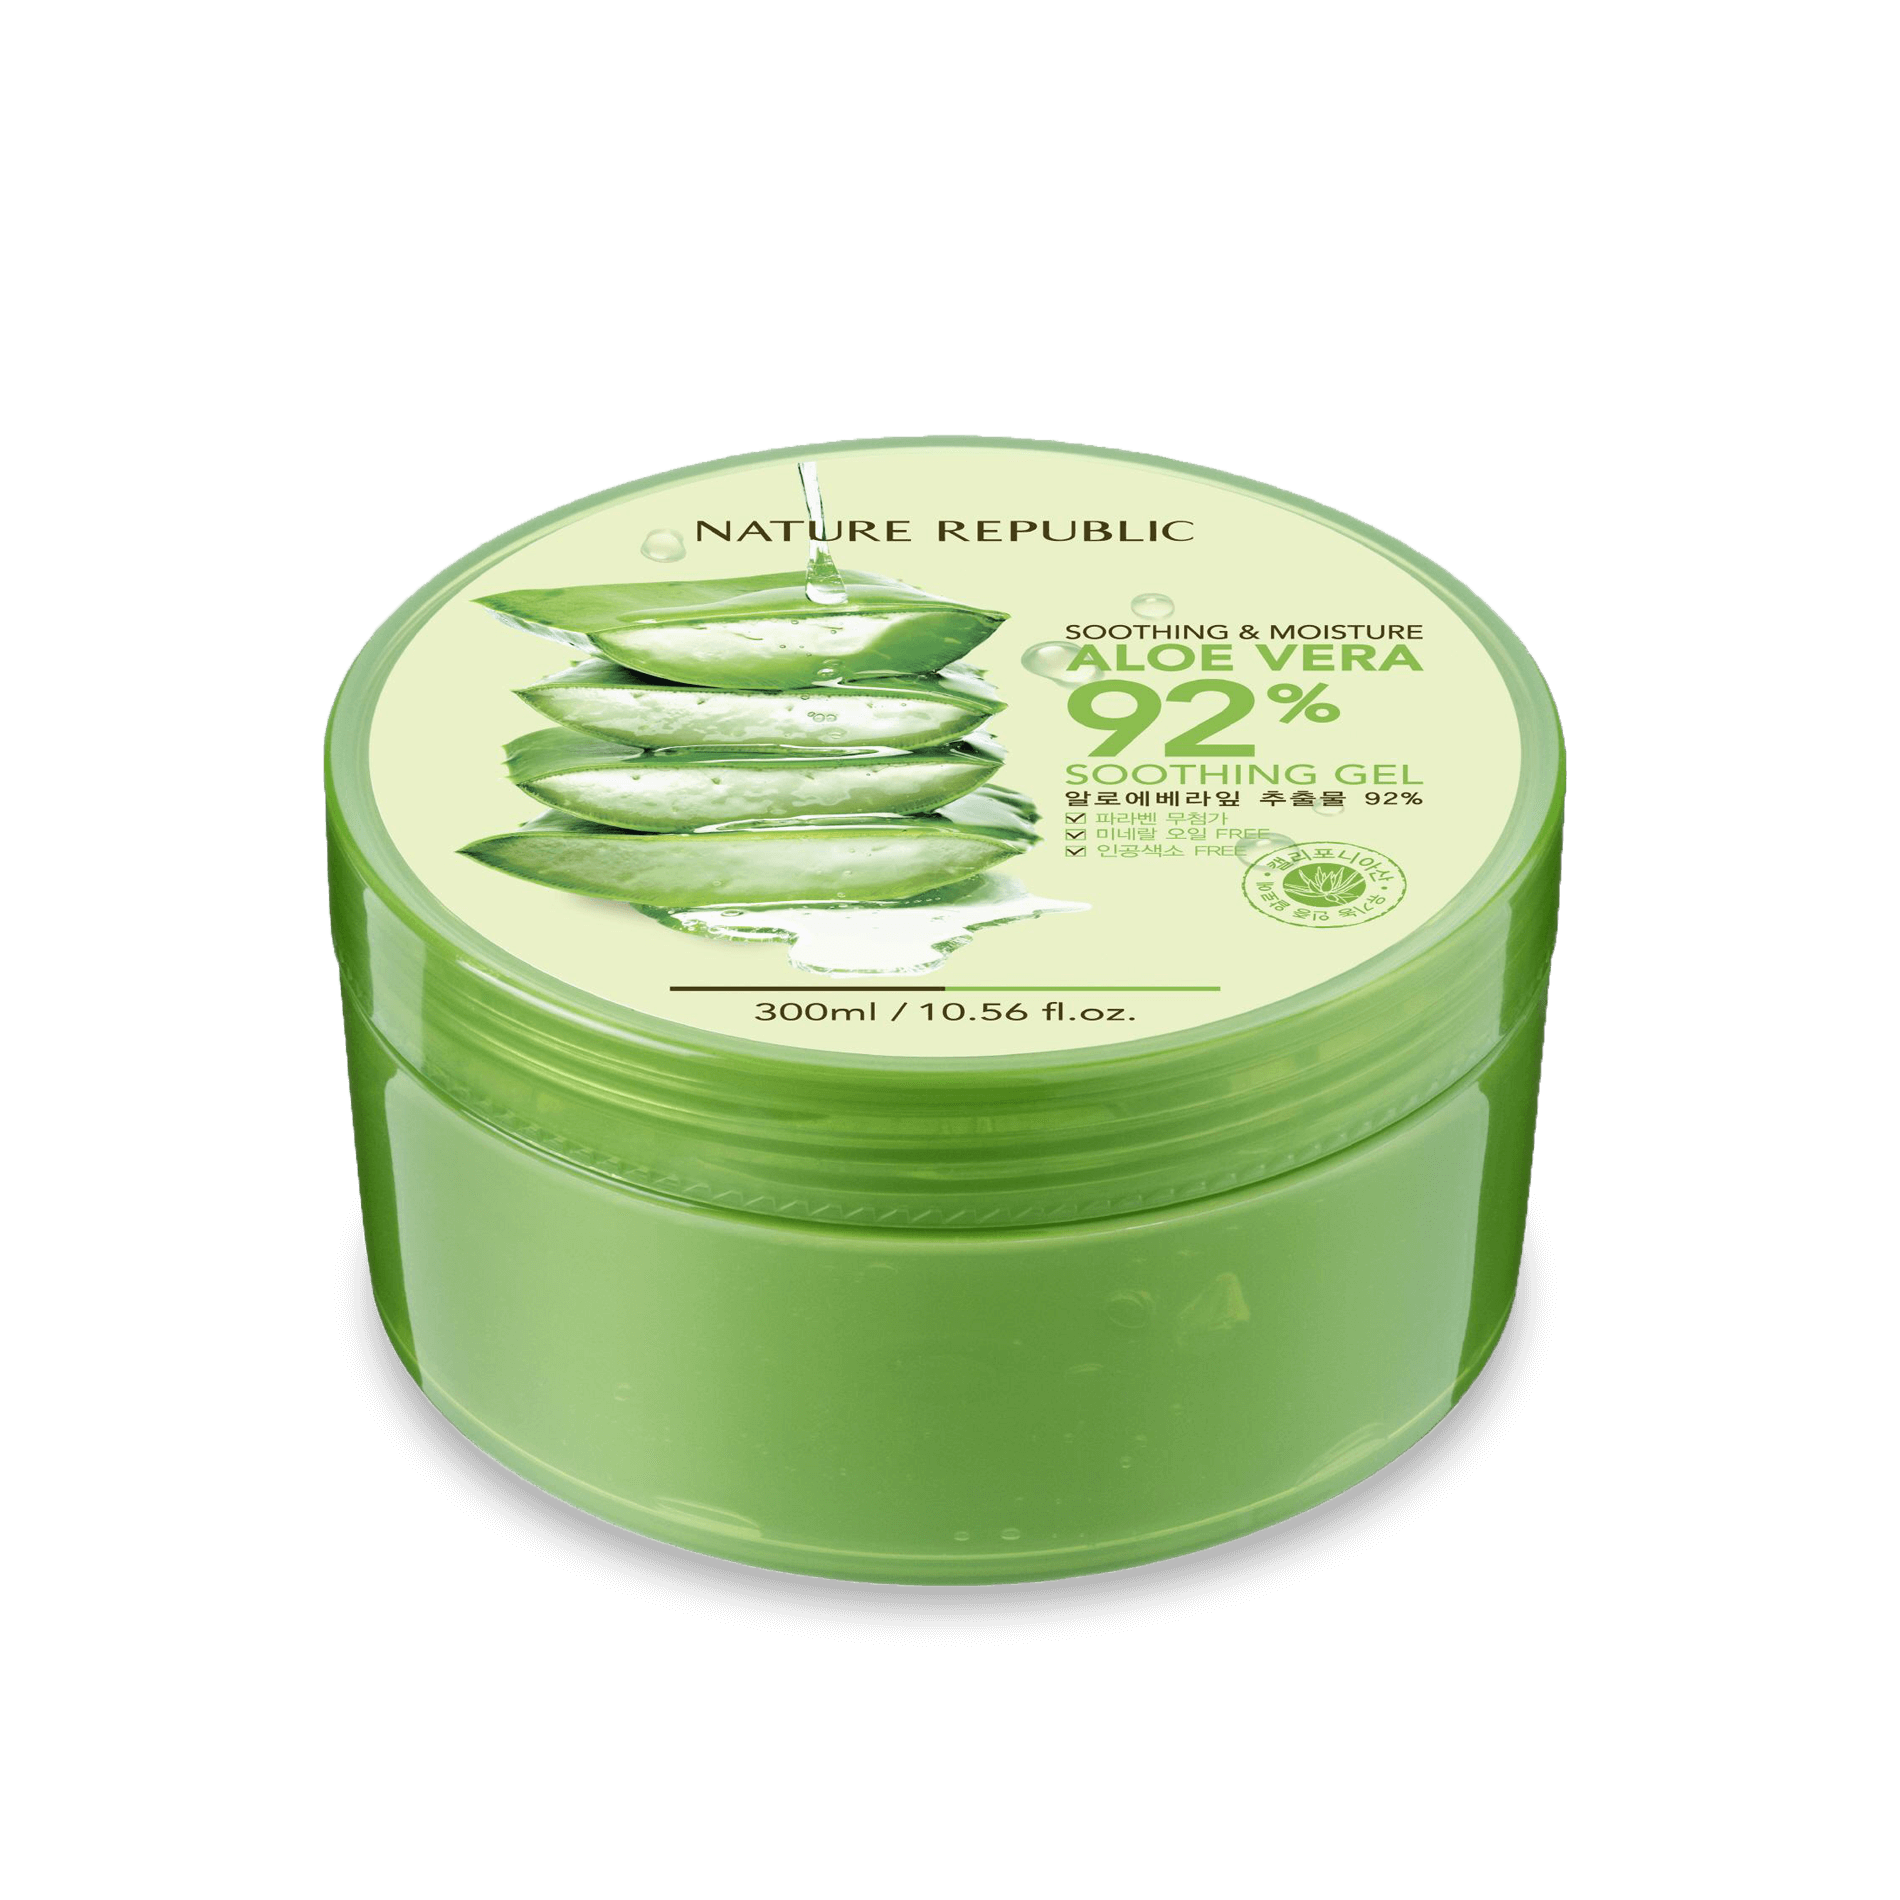 Nature Republic Soothing & Moisture Aloe Vera 92% Soothing Gel 300ml/10.56oz.